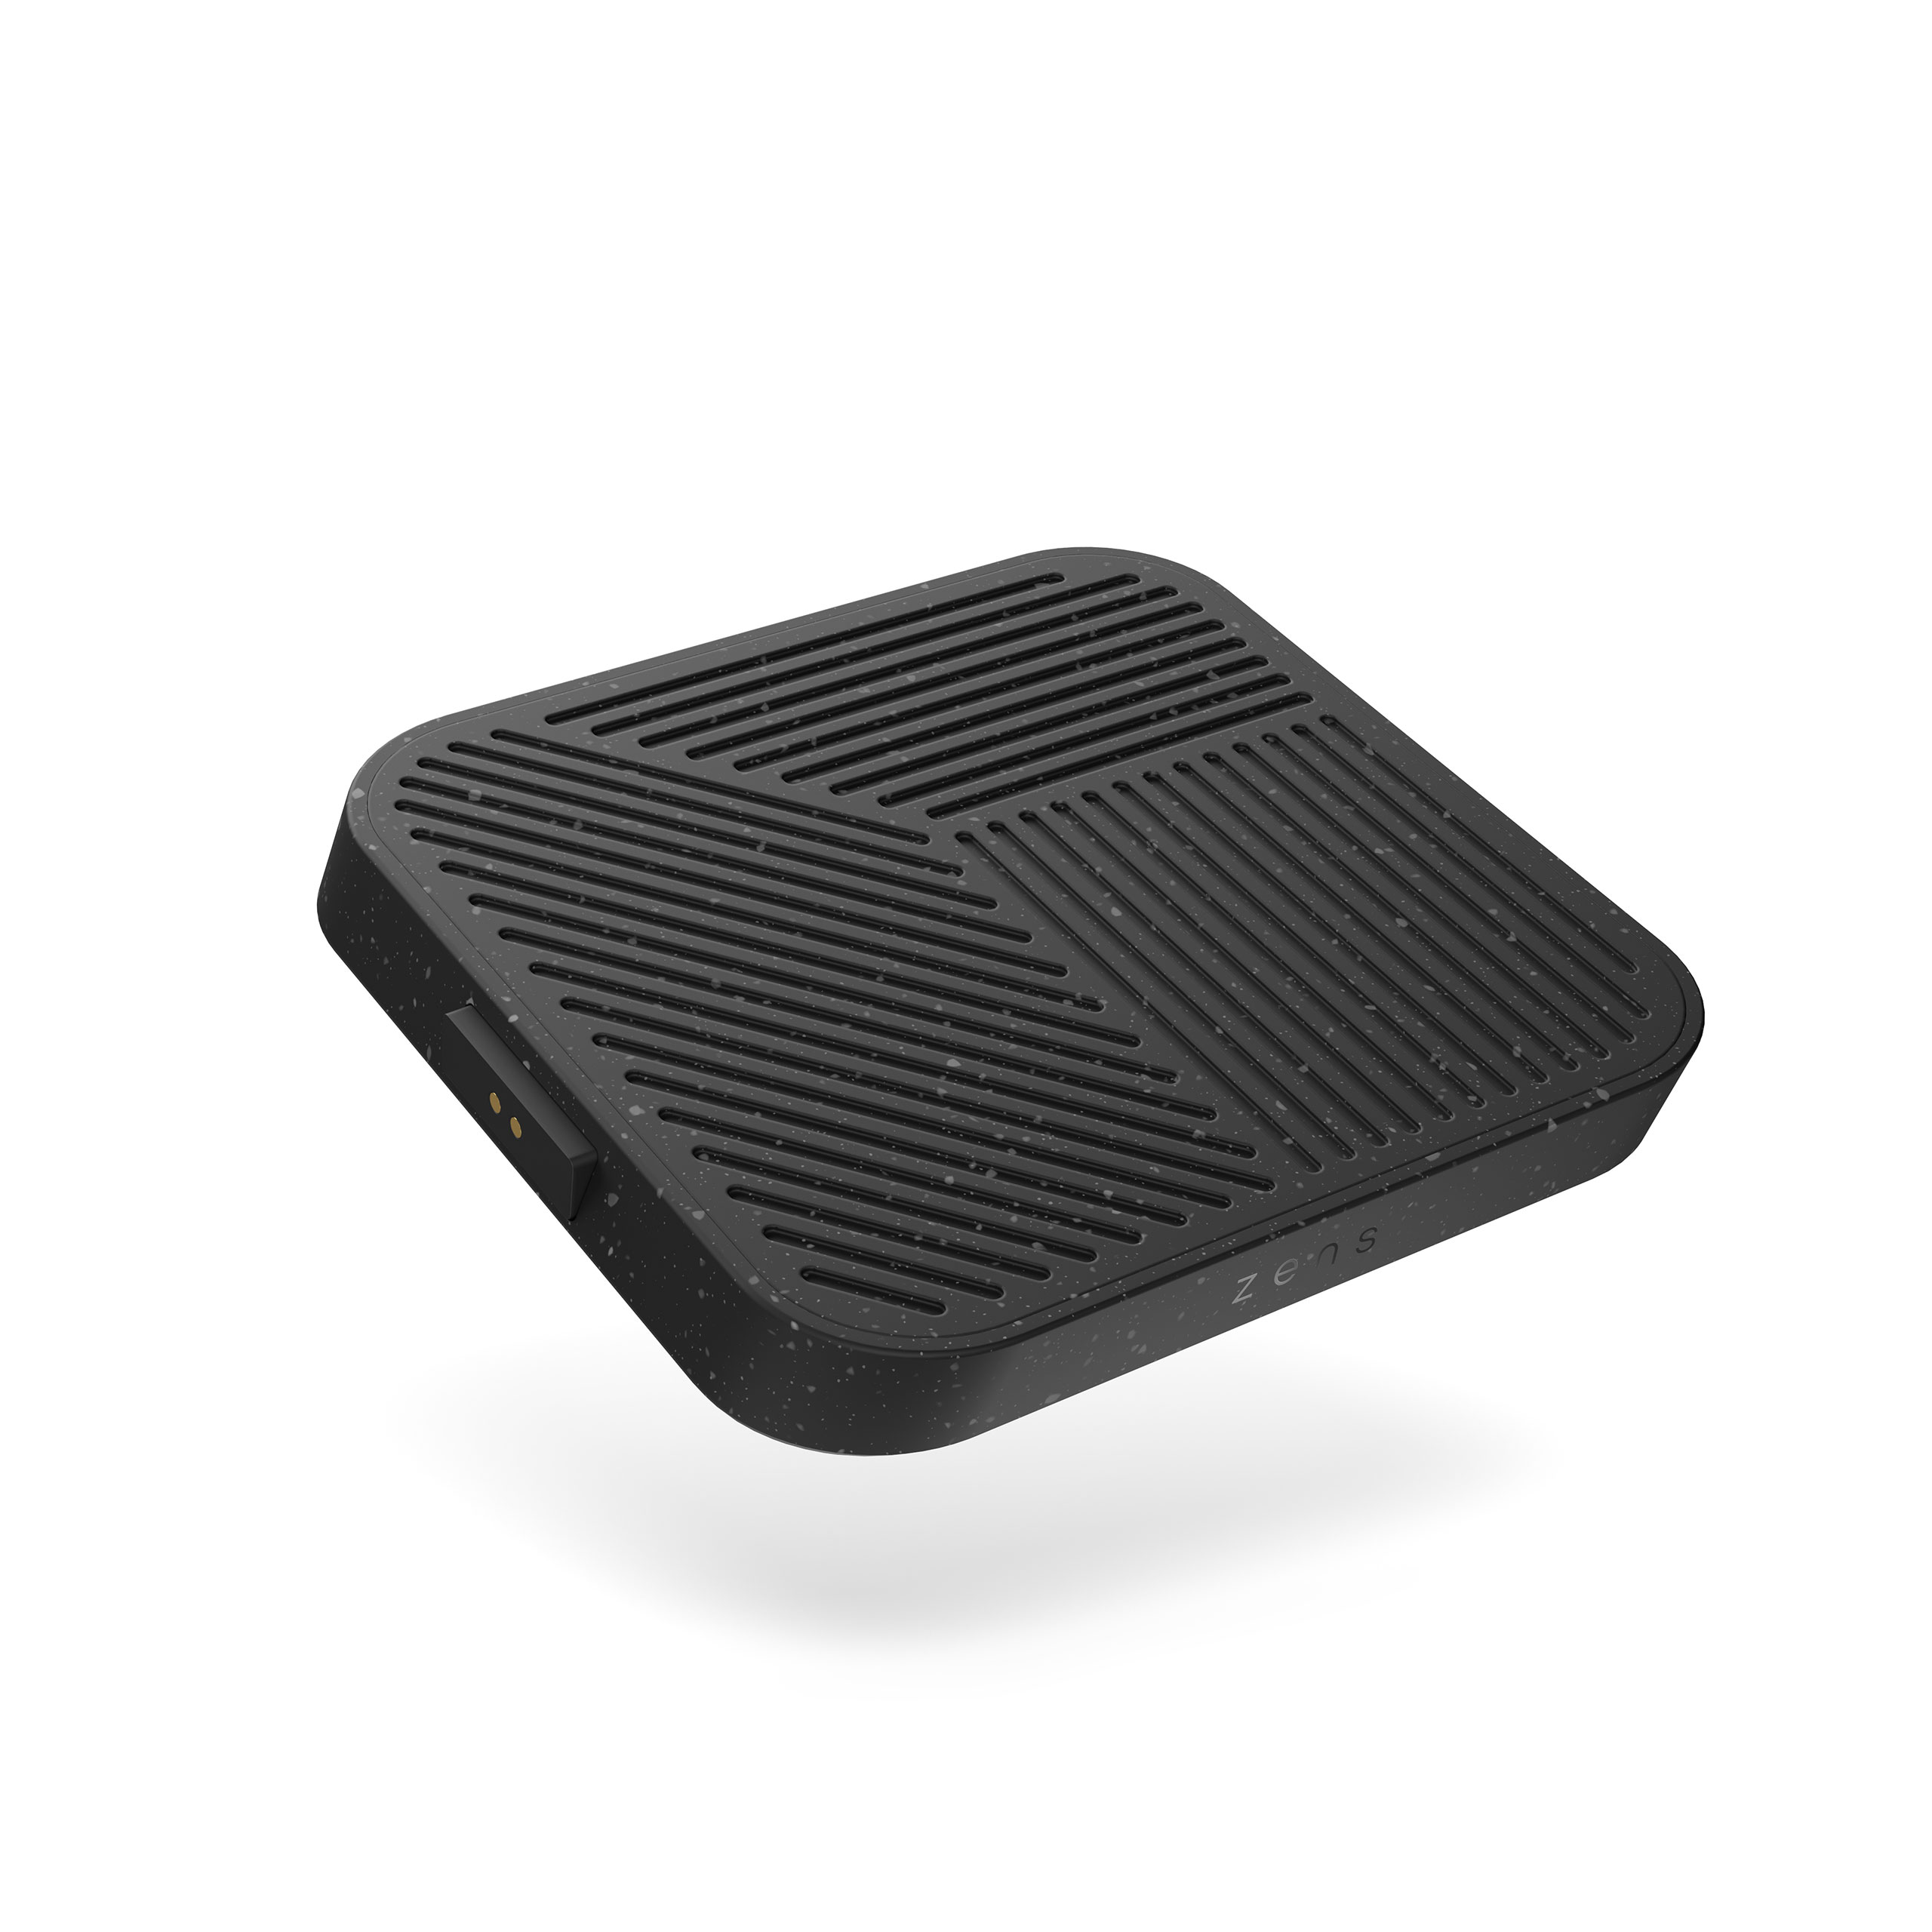 ZEMSC1P - Zens Modular Single Wireless Charger Main Station Front Side View